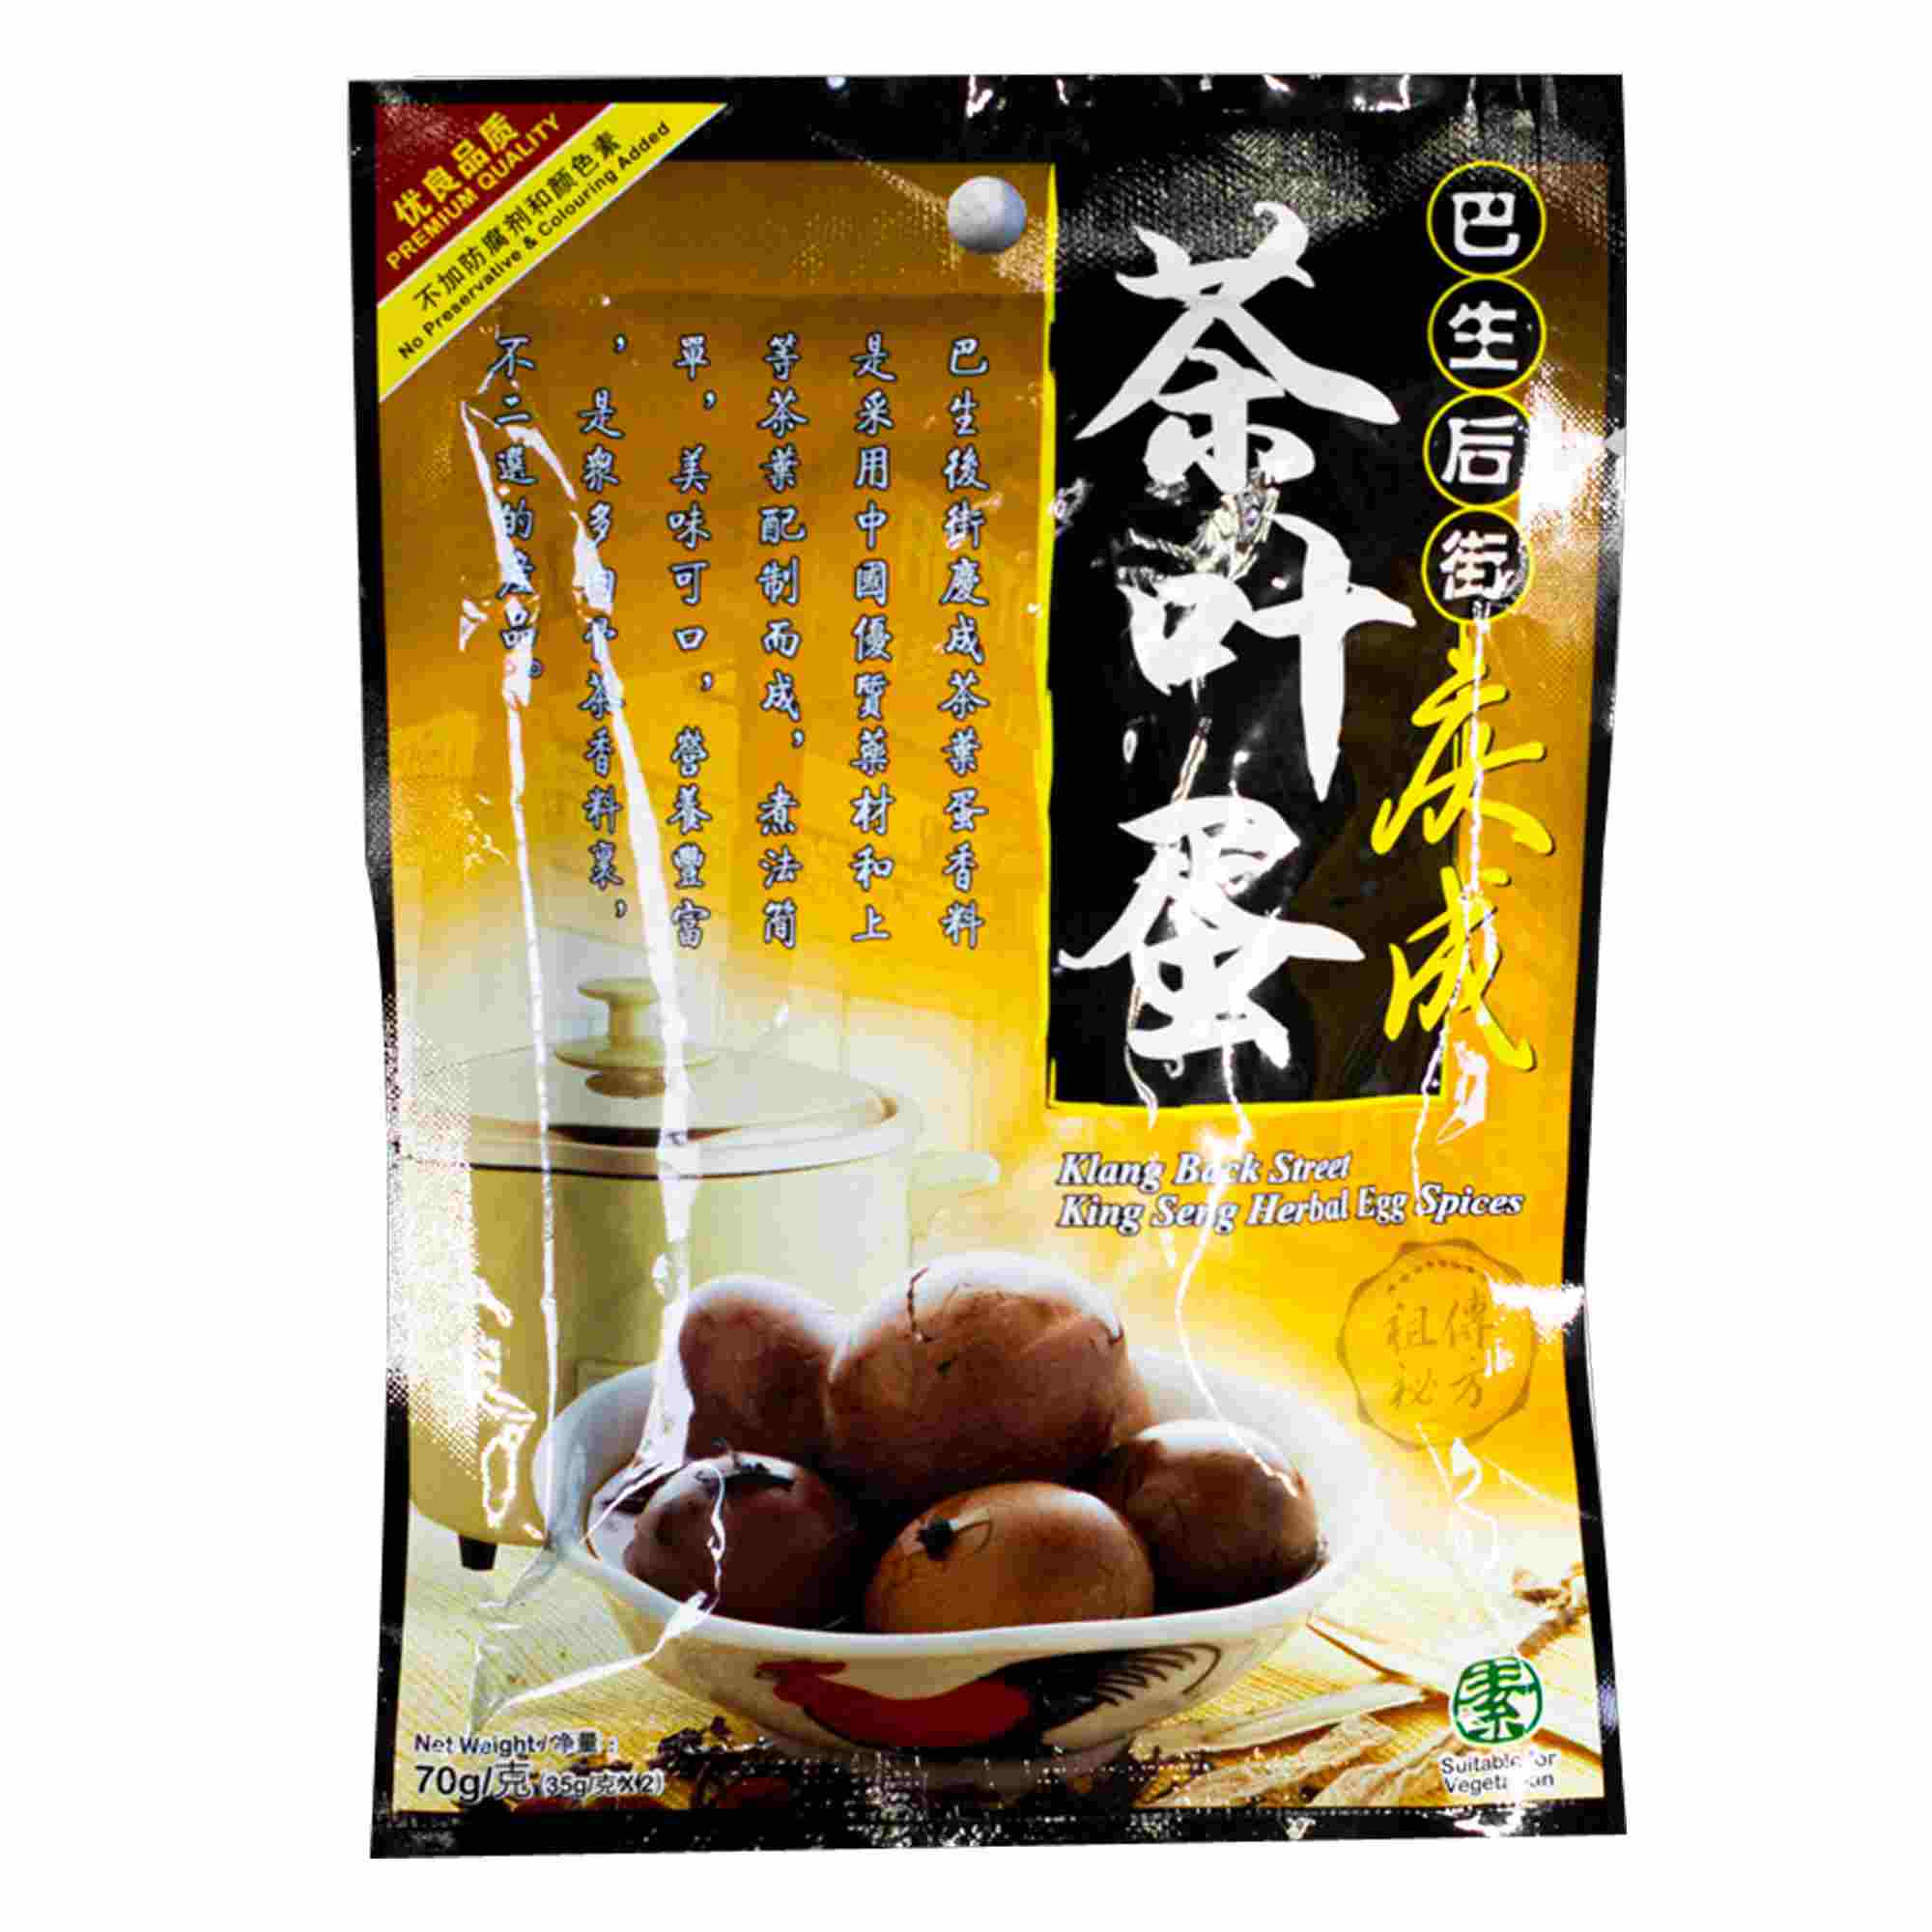 Image King Seng Herbal Egg 庆成 - 茶叶蛋 35grams